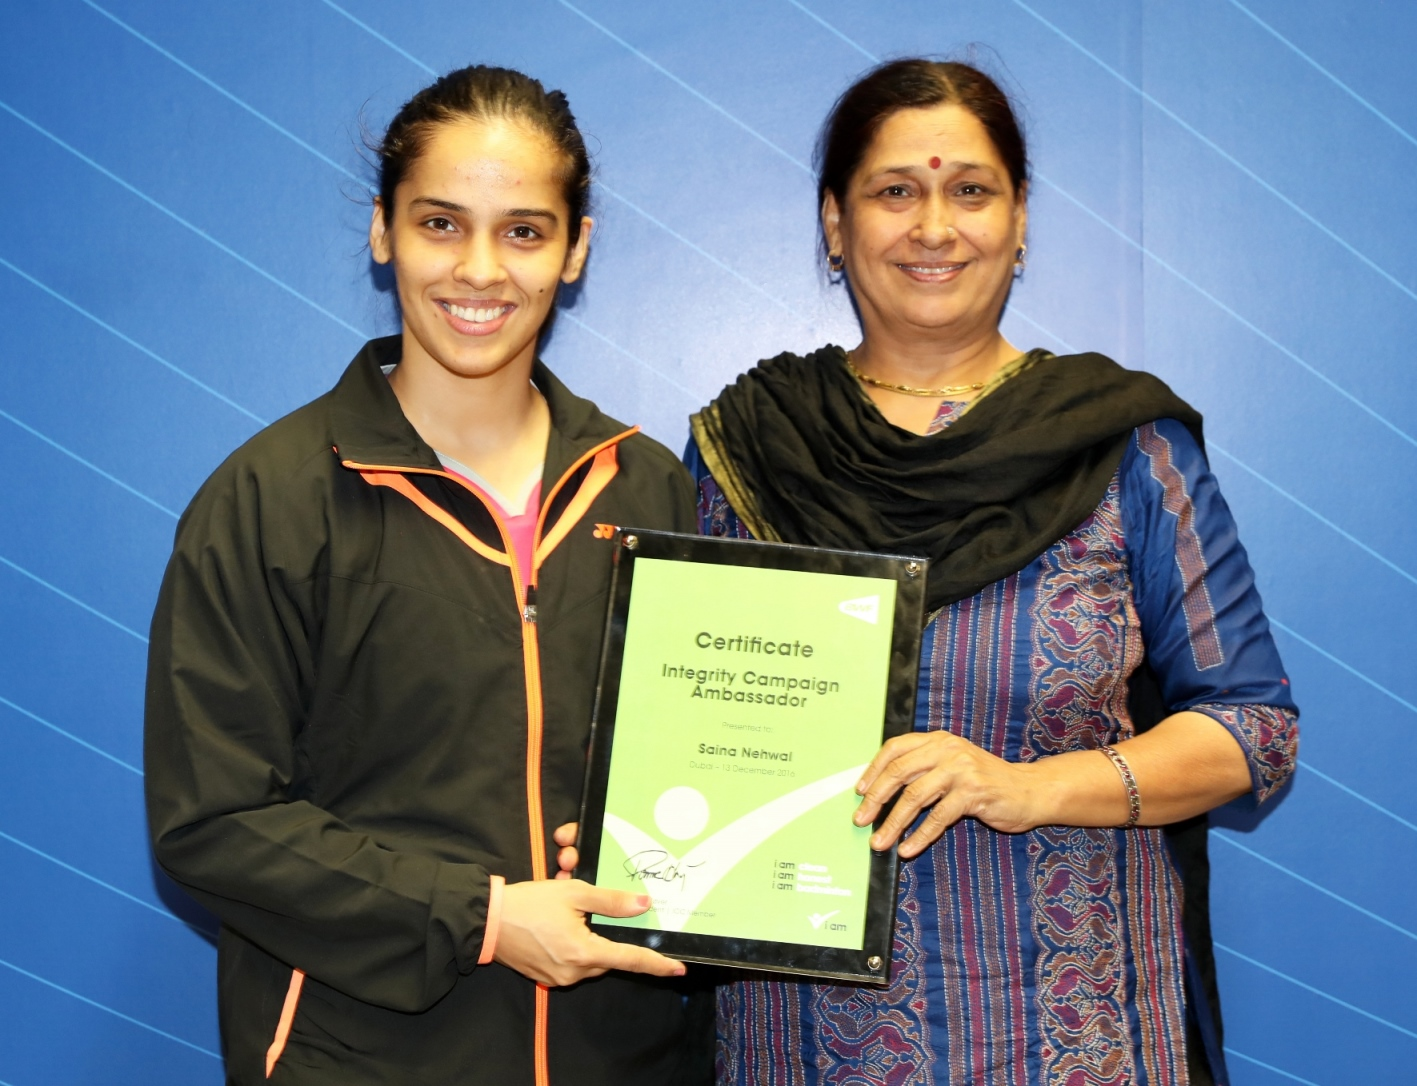 saina-nehwal-of-india-mother